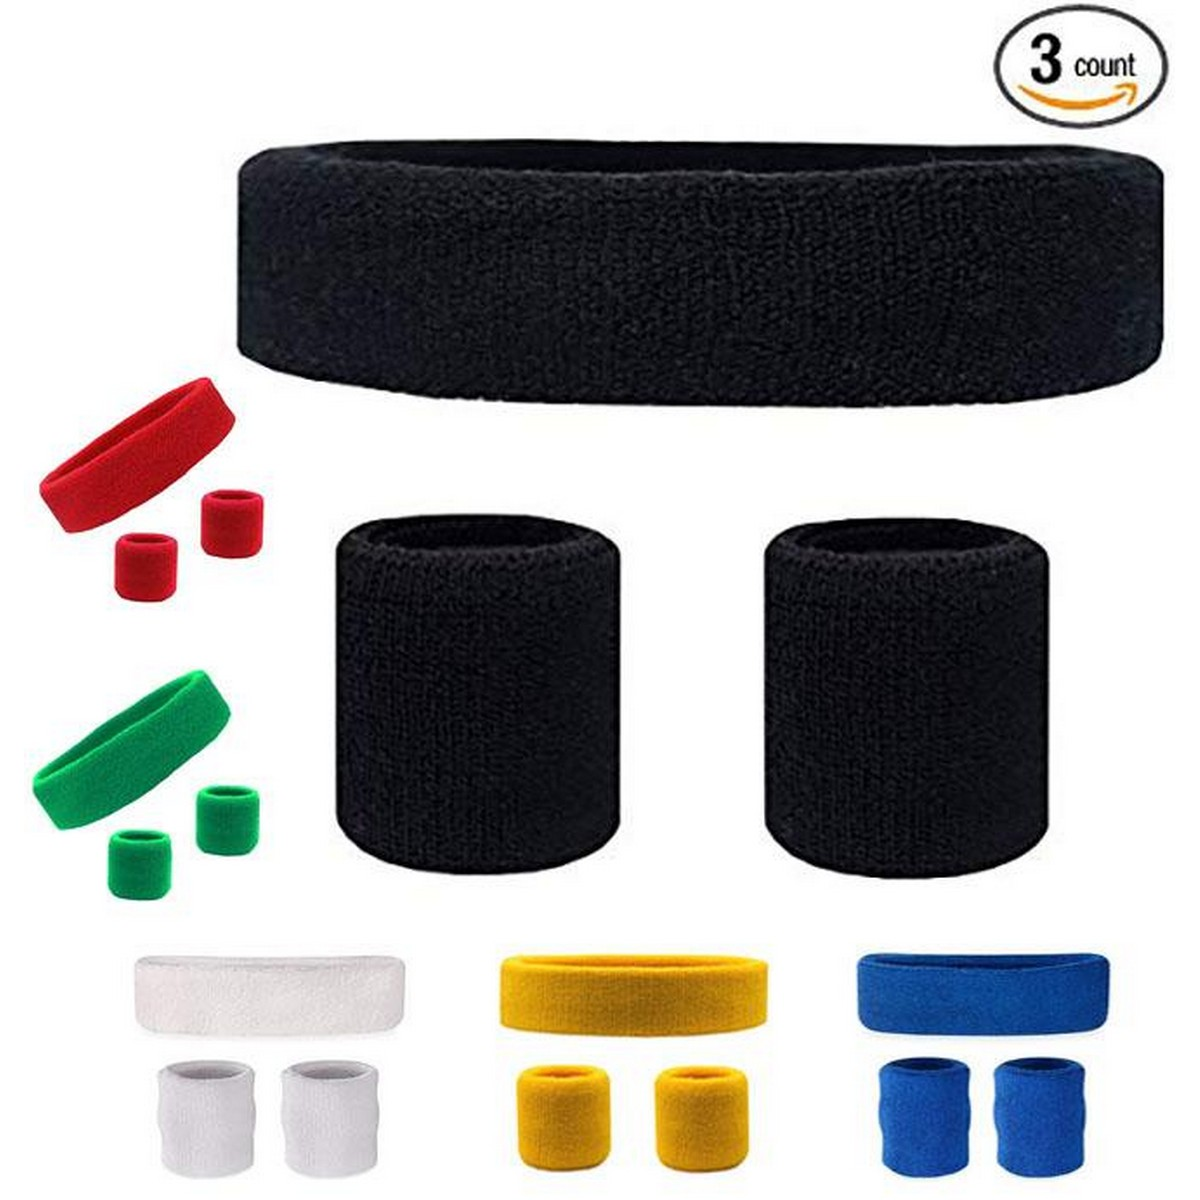 Pack of 3 High Quality Sweat Band for Arms and Head Outdoor Sports Headband Portable Fitness Hair Bands Man Woman Hair Wrap Brace Elastic Cycling Yoga Running Exercising Sweatband Sweatband Elastic Yoga Running Fitness Sweat band Headband Hair Bands